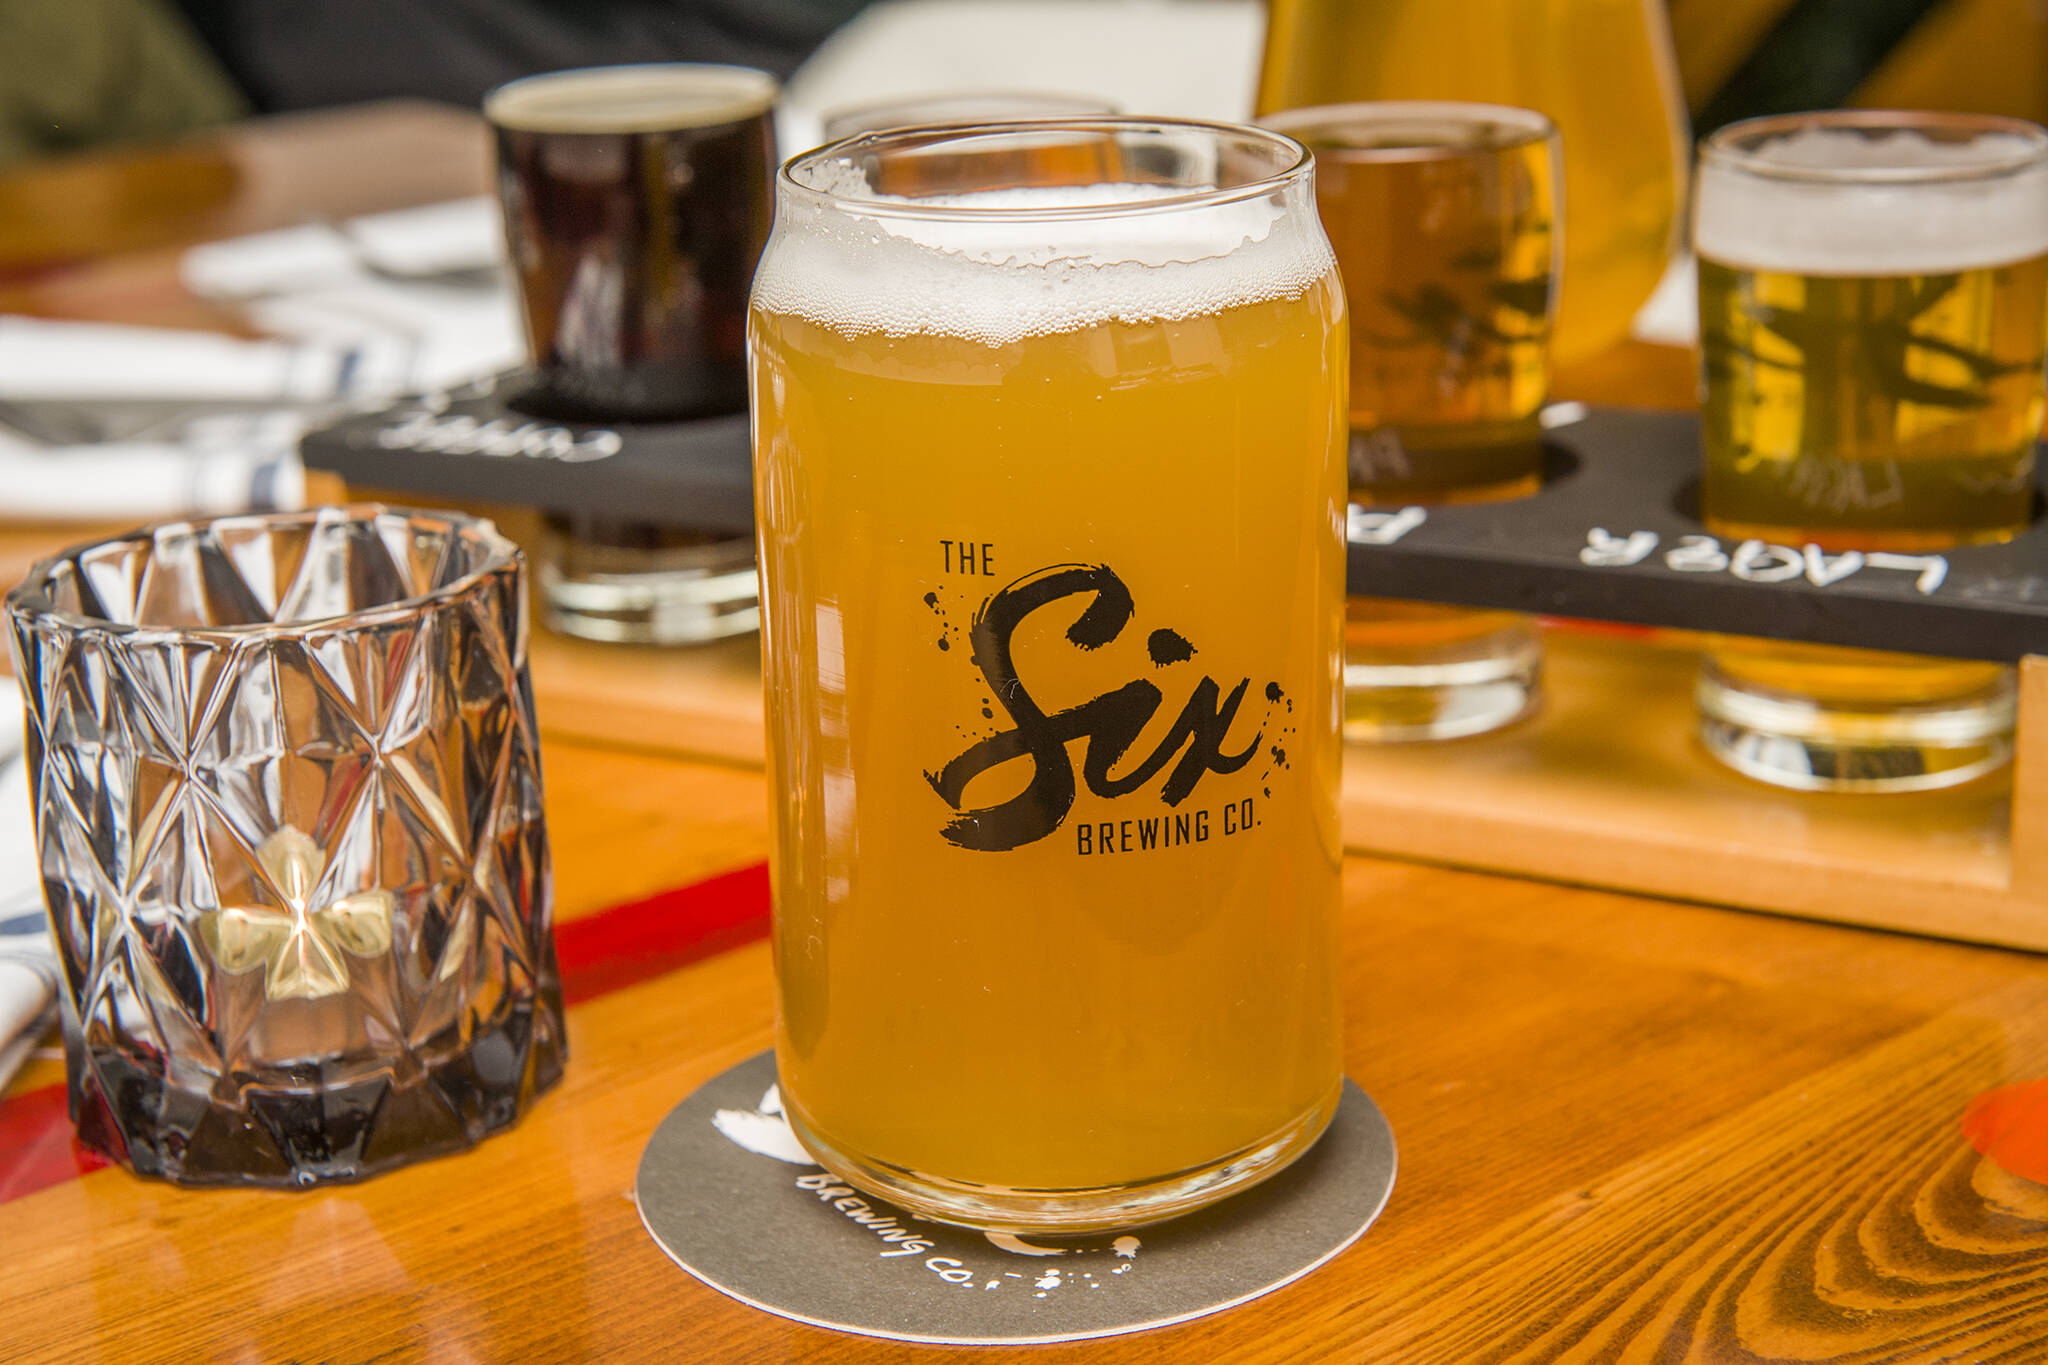 Six brewing toronto